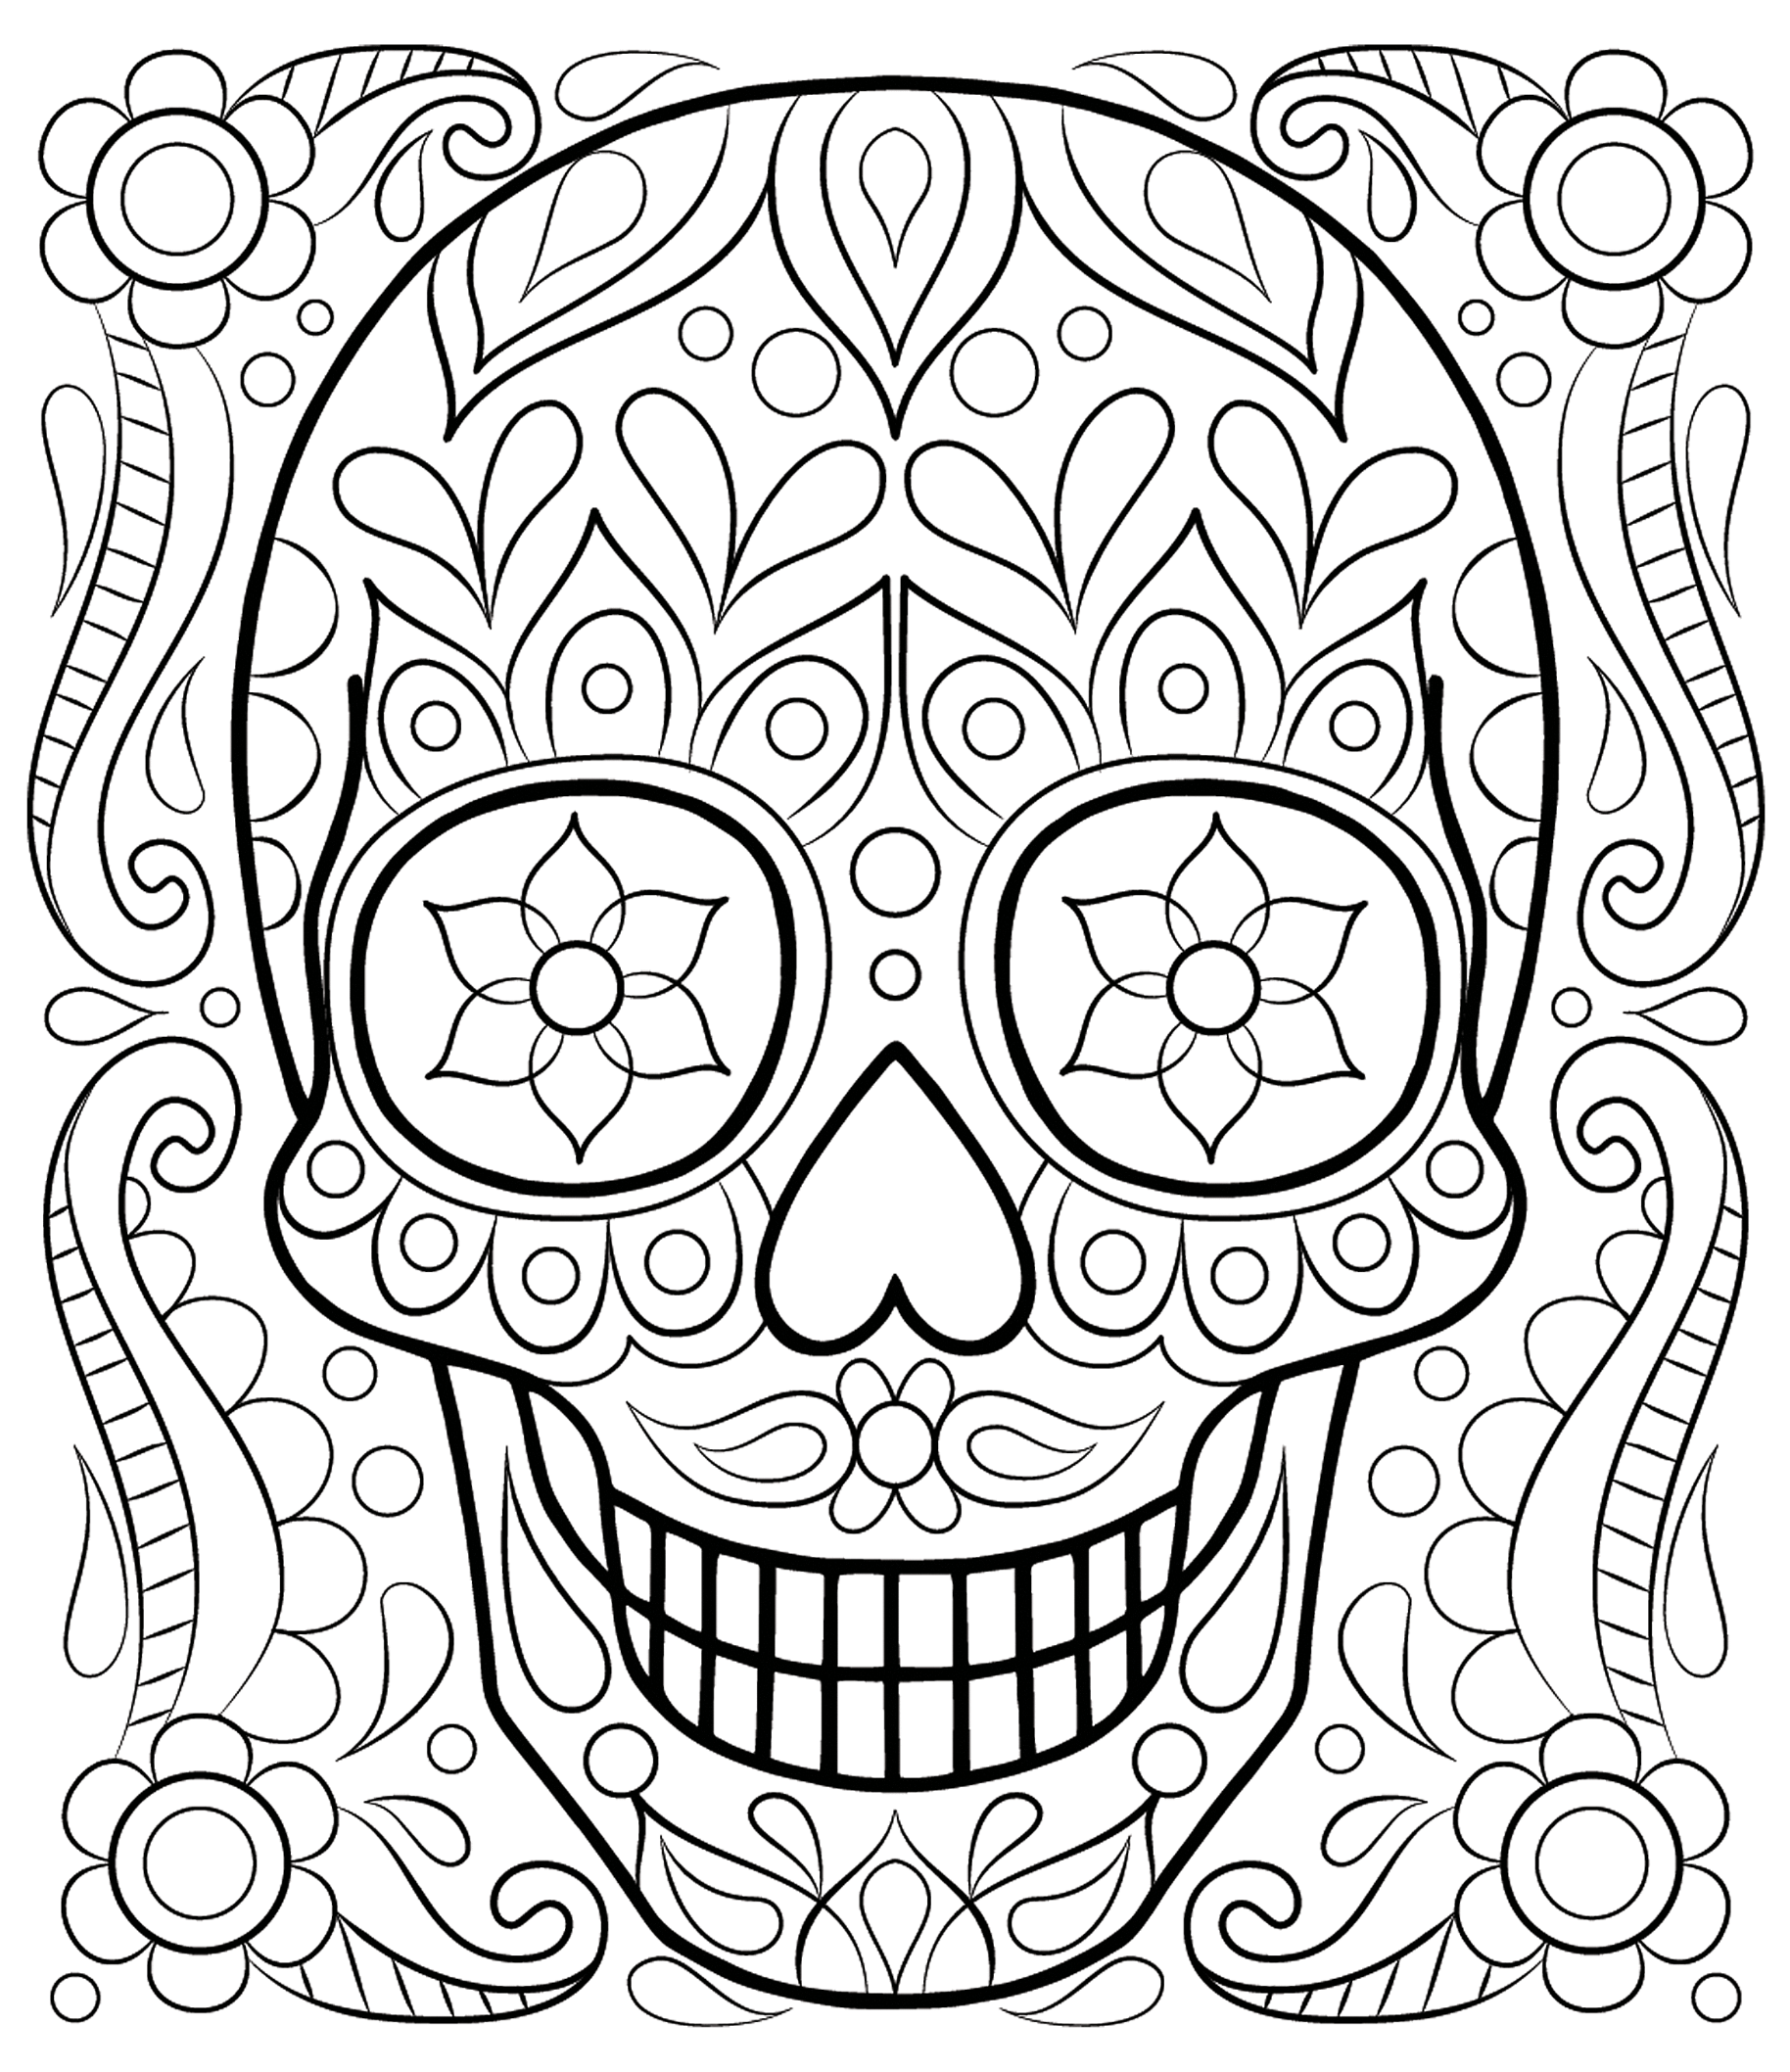 Time Consuming Coloring Pages Coloring Coloring Pages